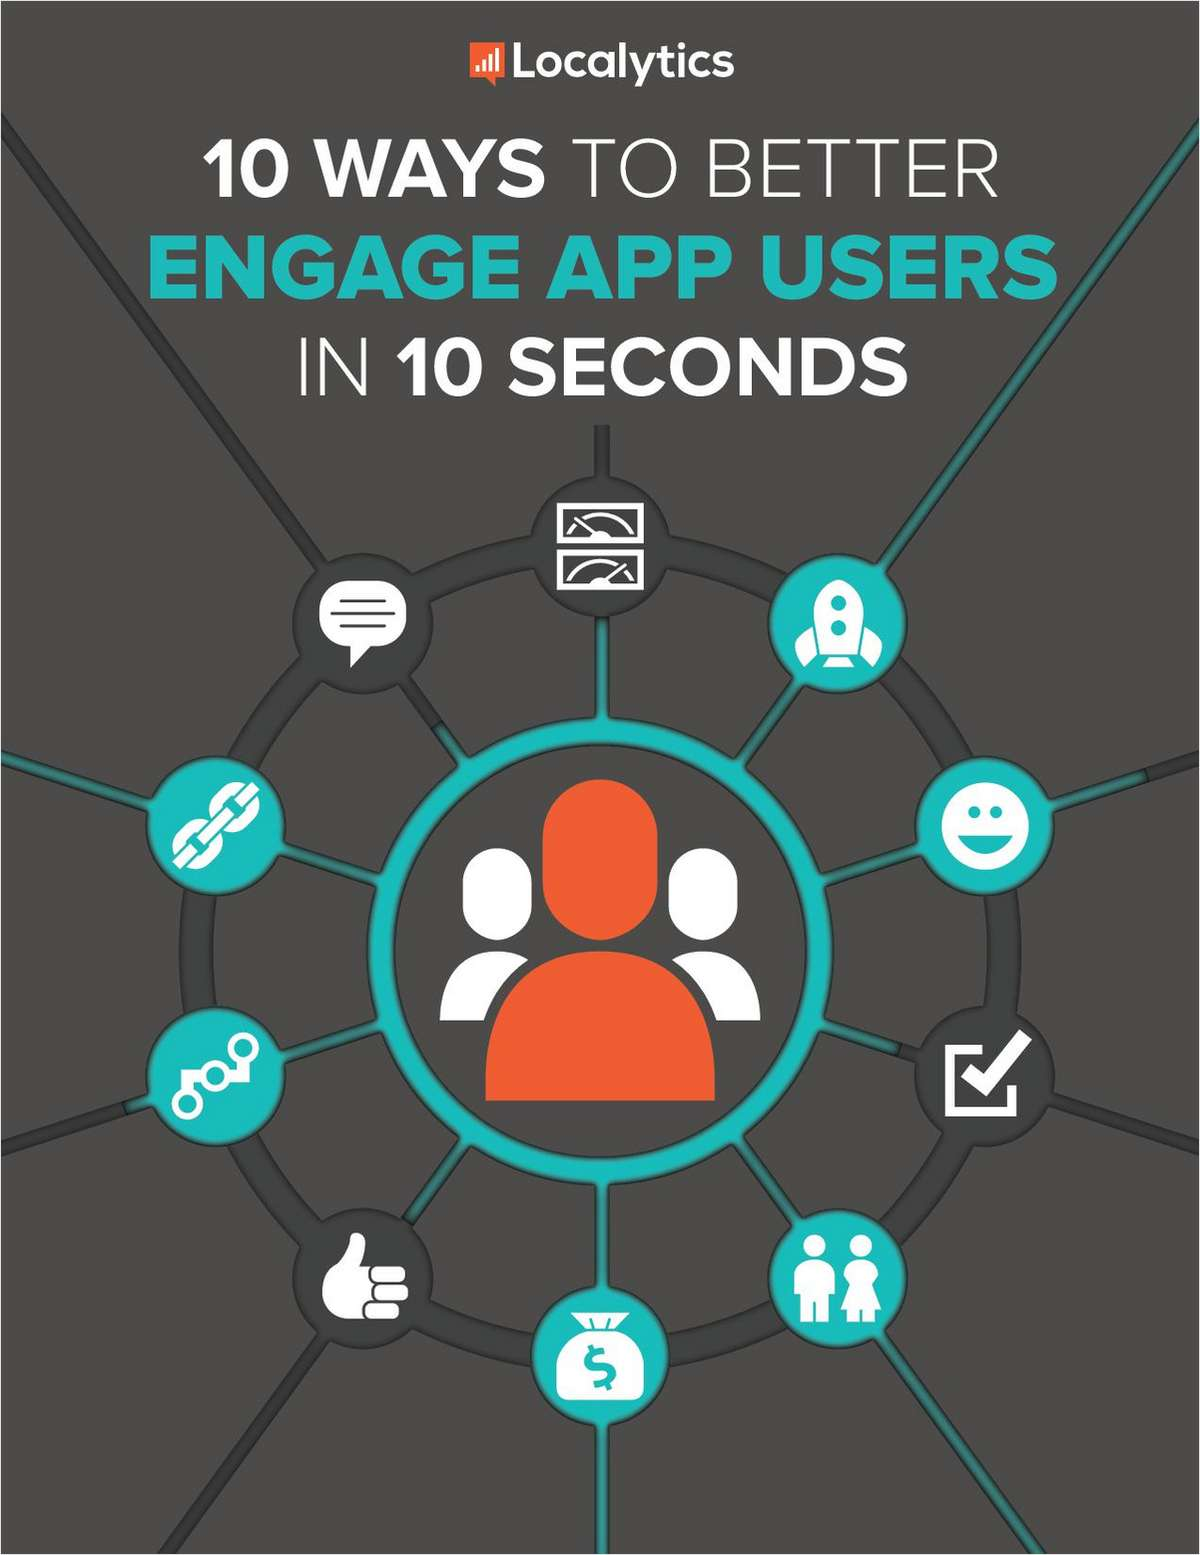 10 Ways to Better Engage App Users in 10 Seconds